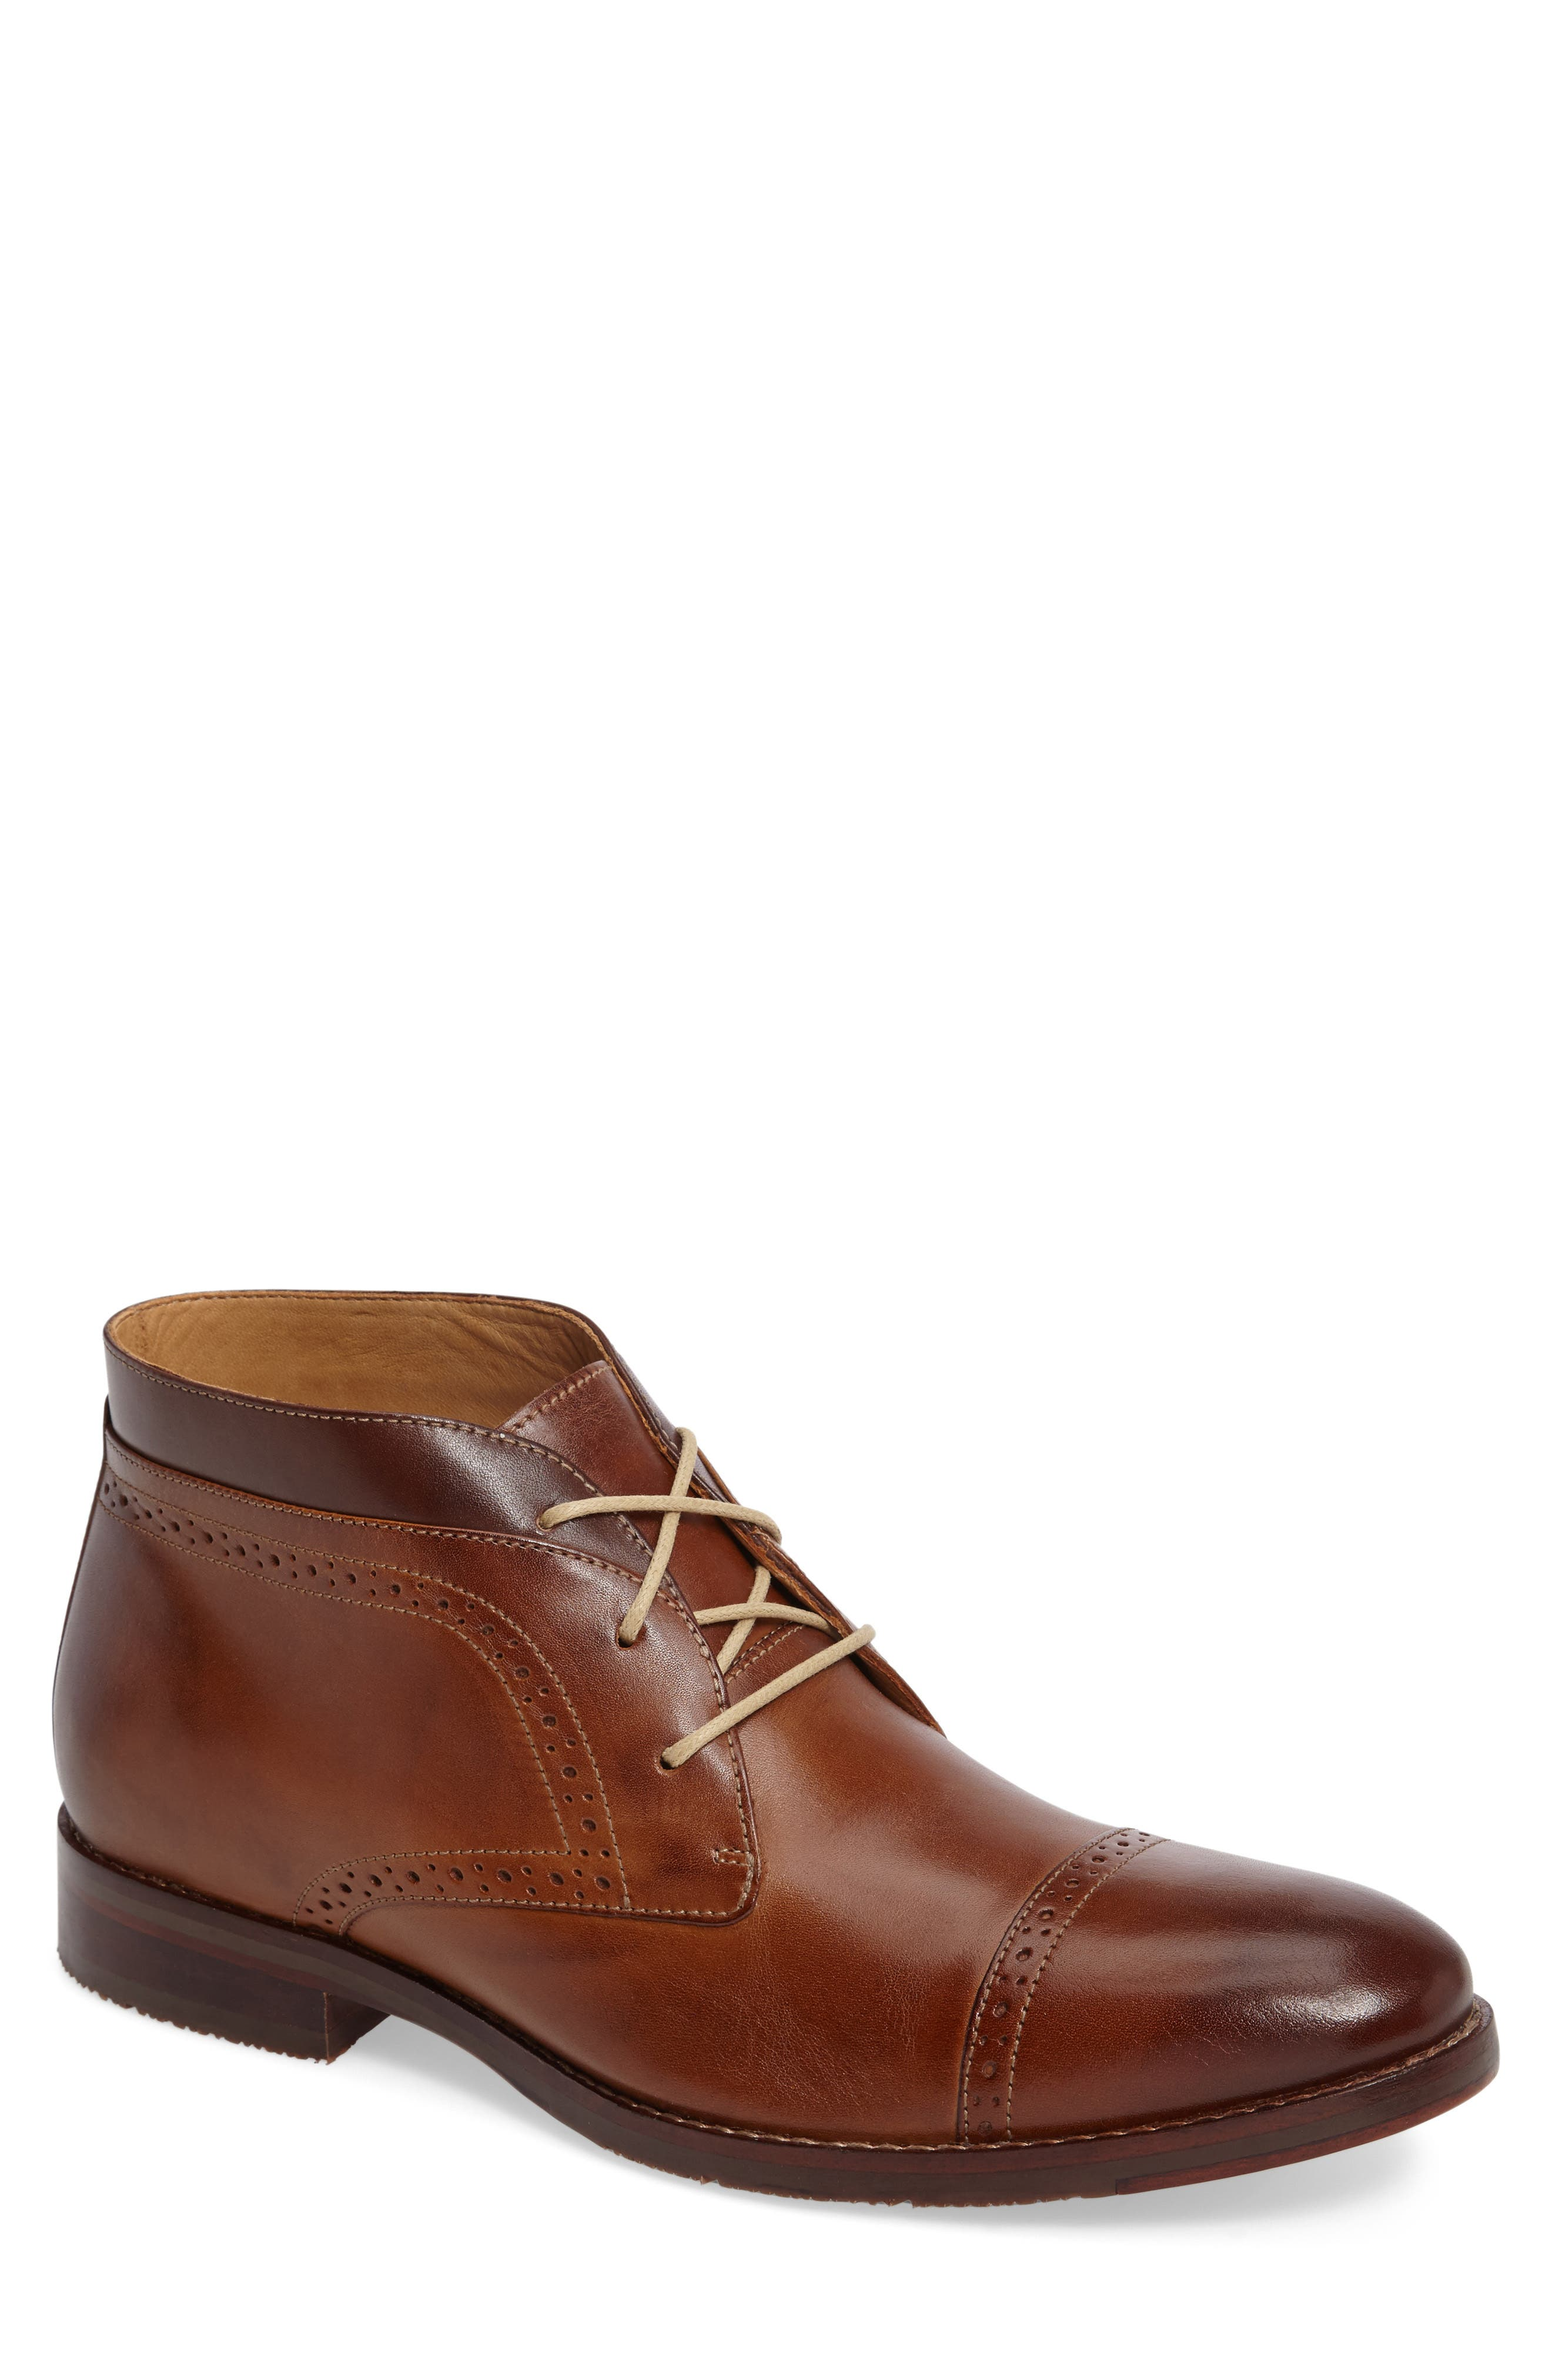 Garner Cap Toe Chukka Boot,                         Main,                         color,